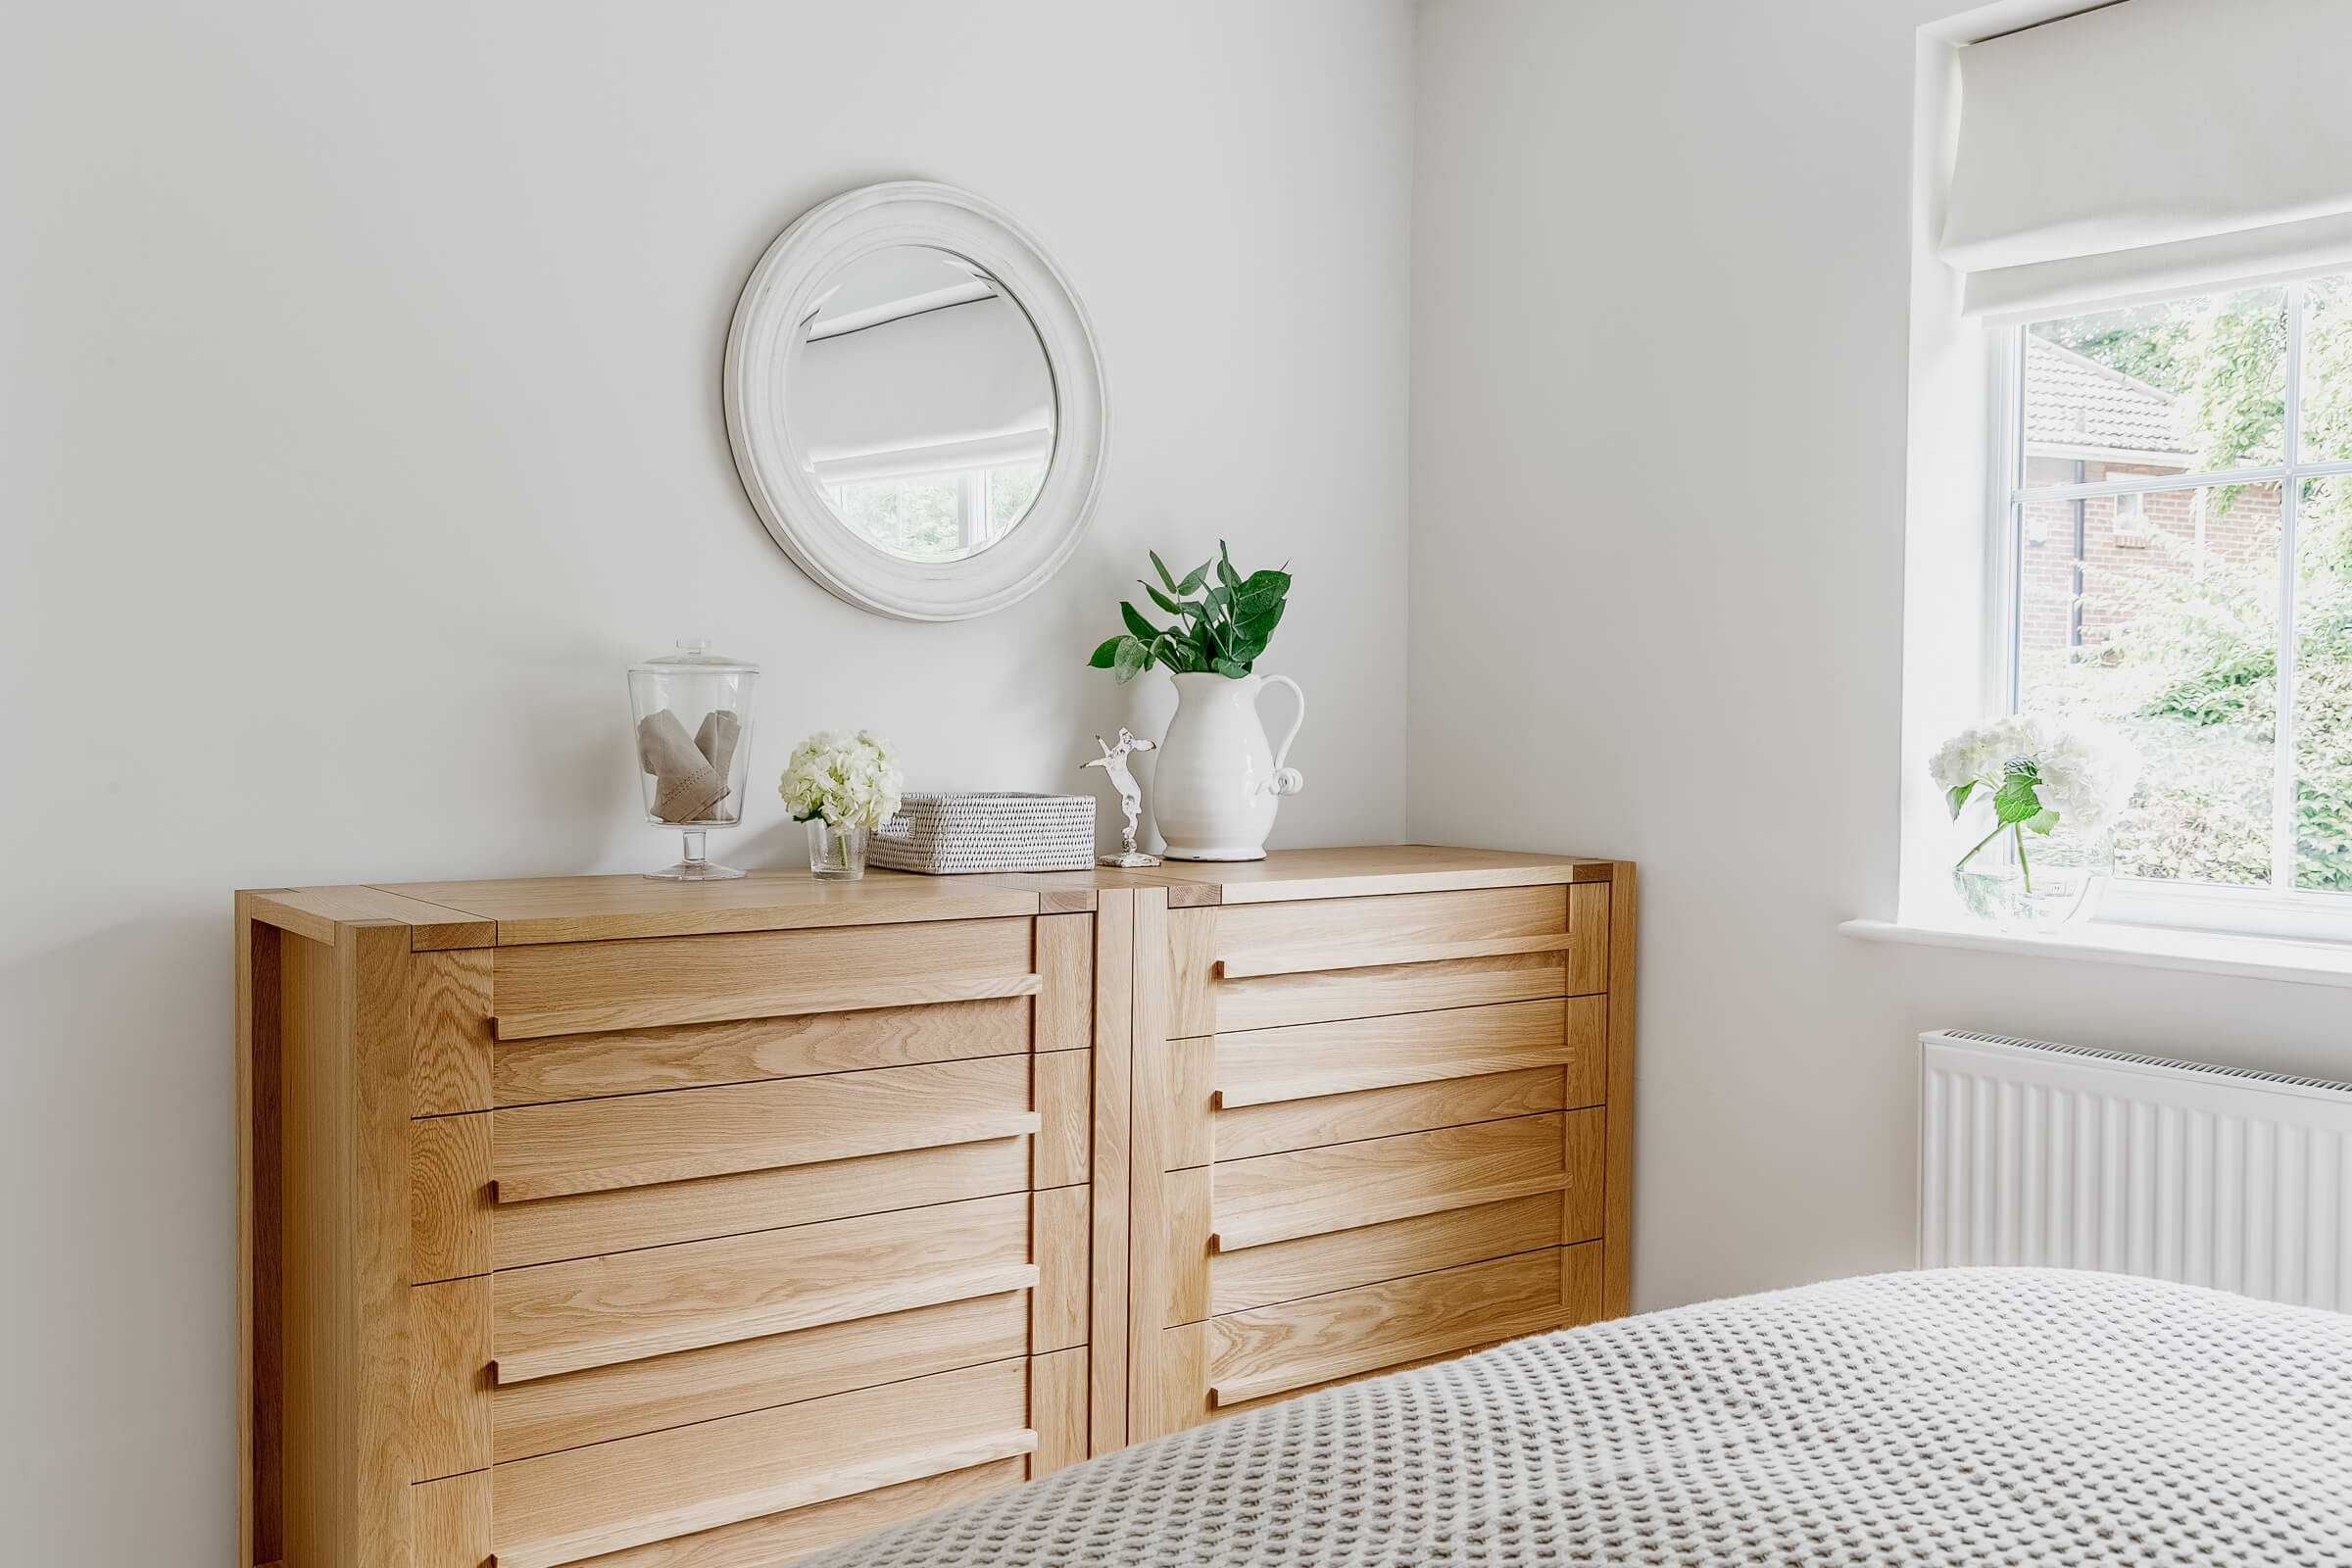 Master bdroom with chest of drawers